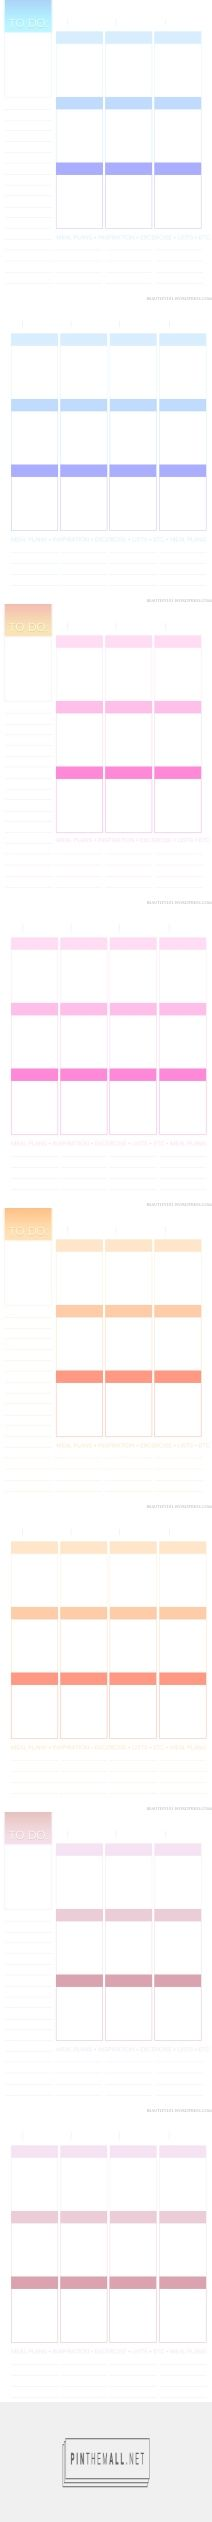 Planner101: Free printable page layout (Erin Condren inspired) | Beautify 101 - created via http://pinthemall.net